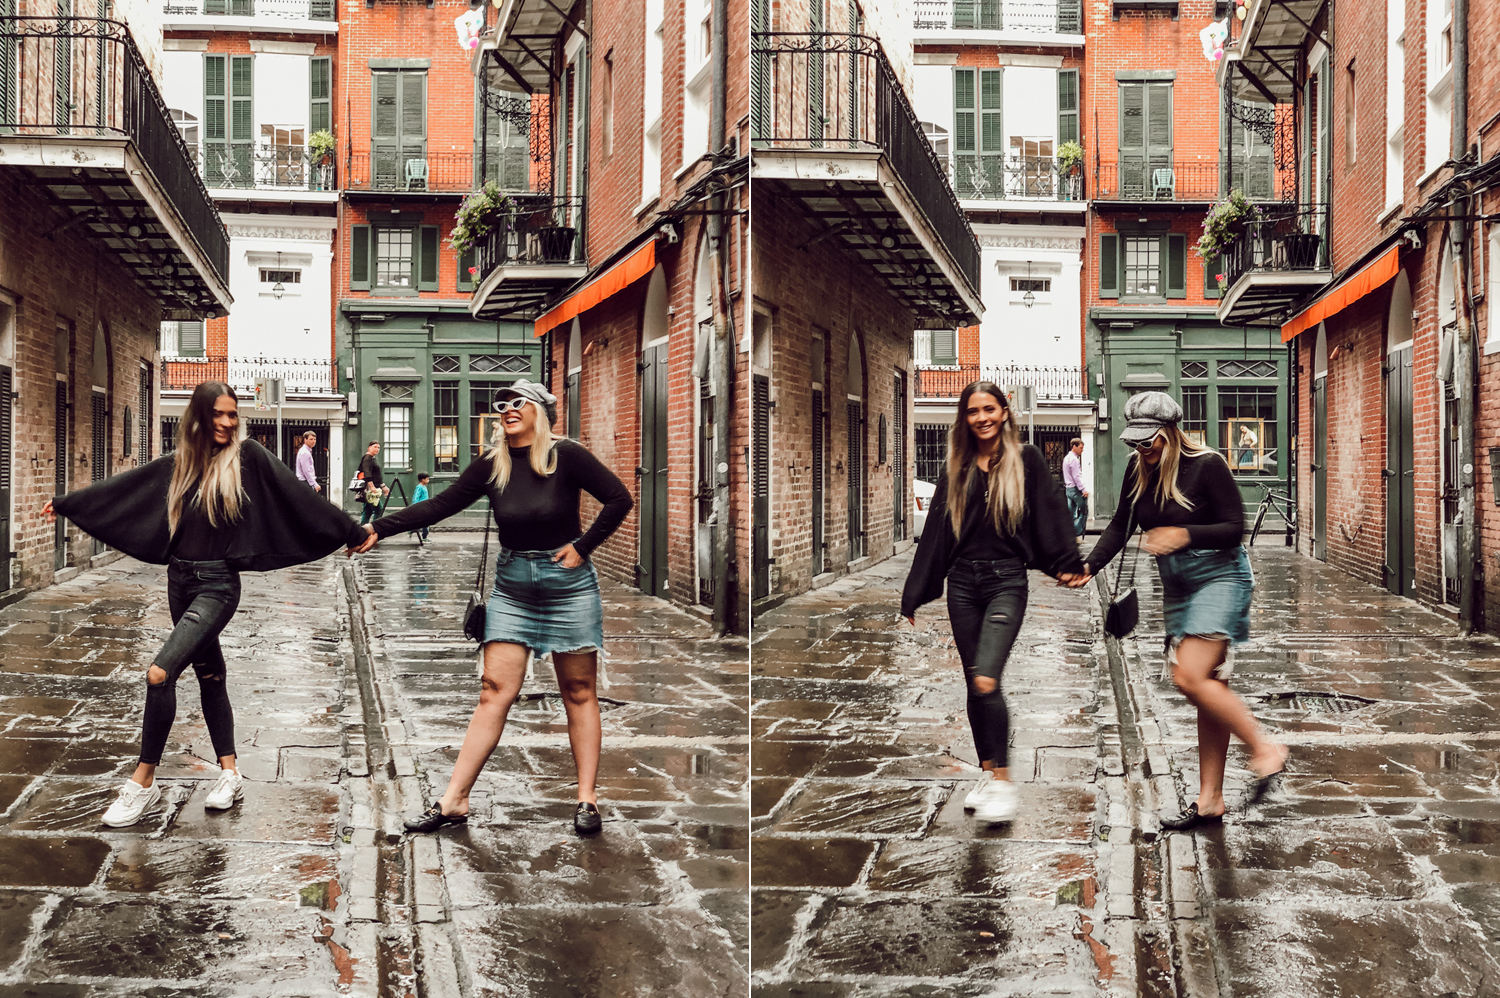 Madi and Tessa dancing in the rain in the French quarter